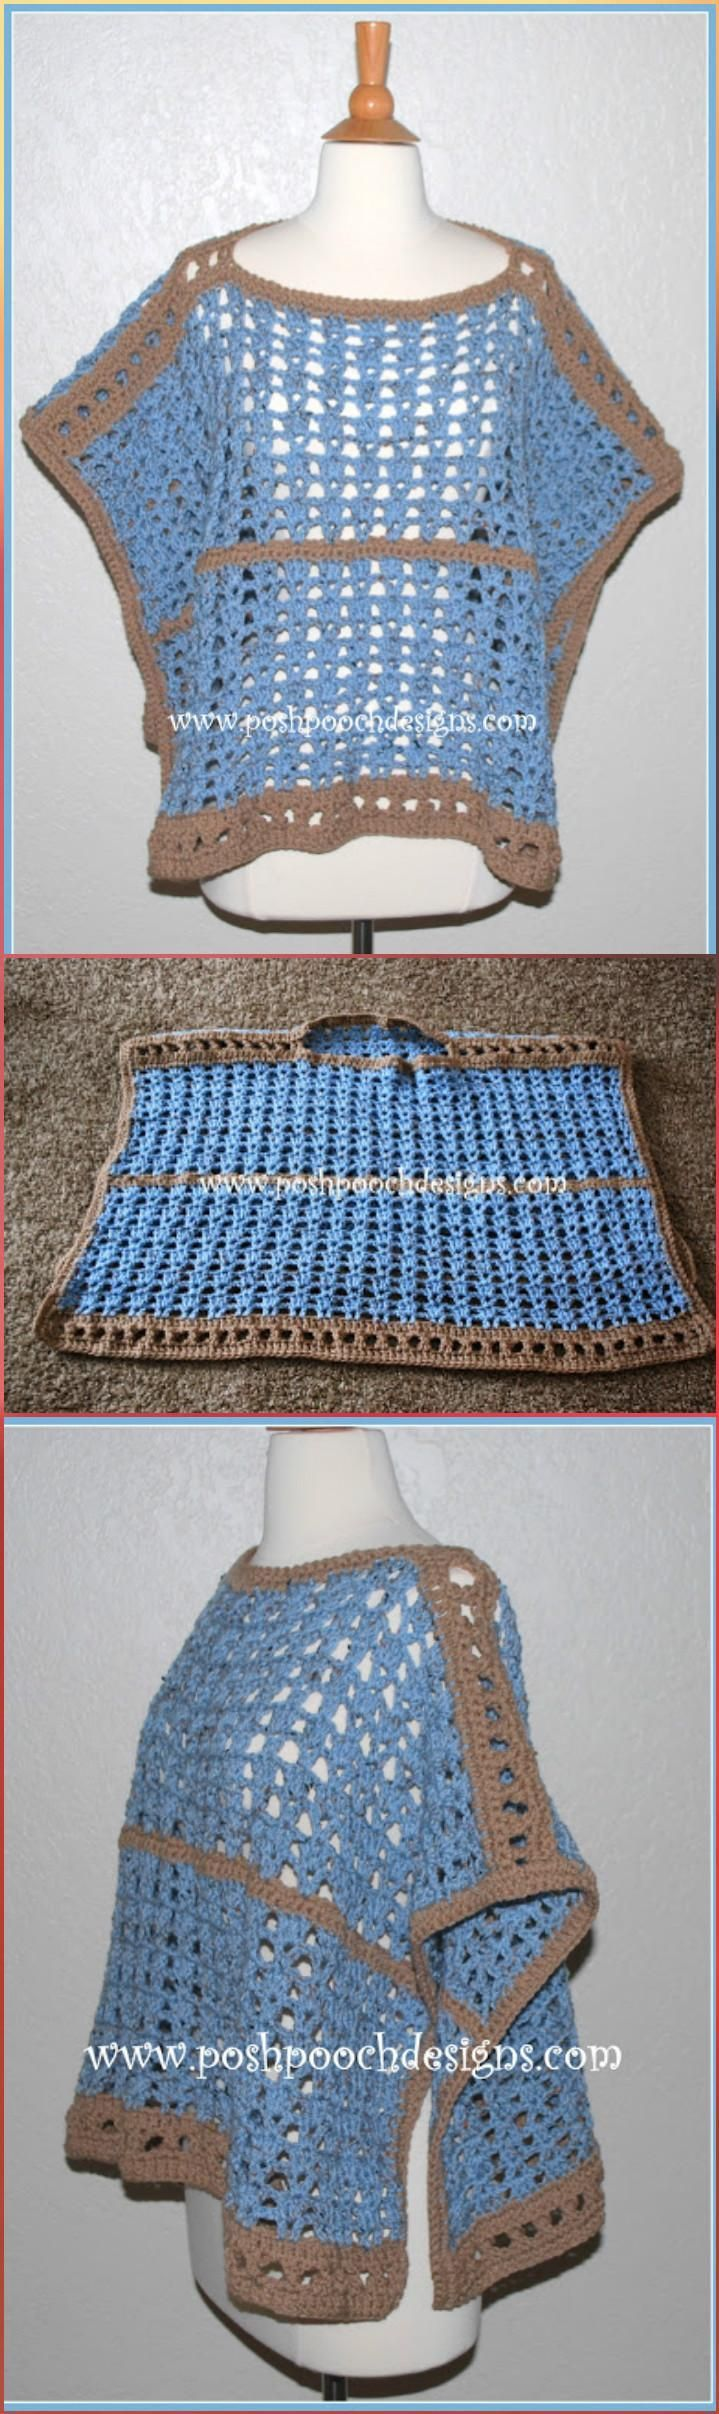 Crochet Sand and Sea Poncho - 50 Free Crochet Poncho Patterns for All - Page 7 of 9 - DIY & Crafts